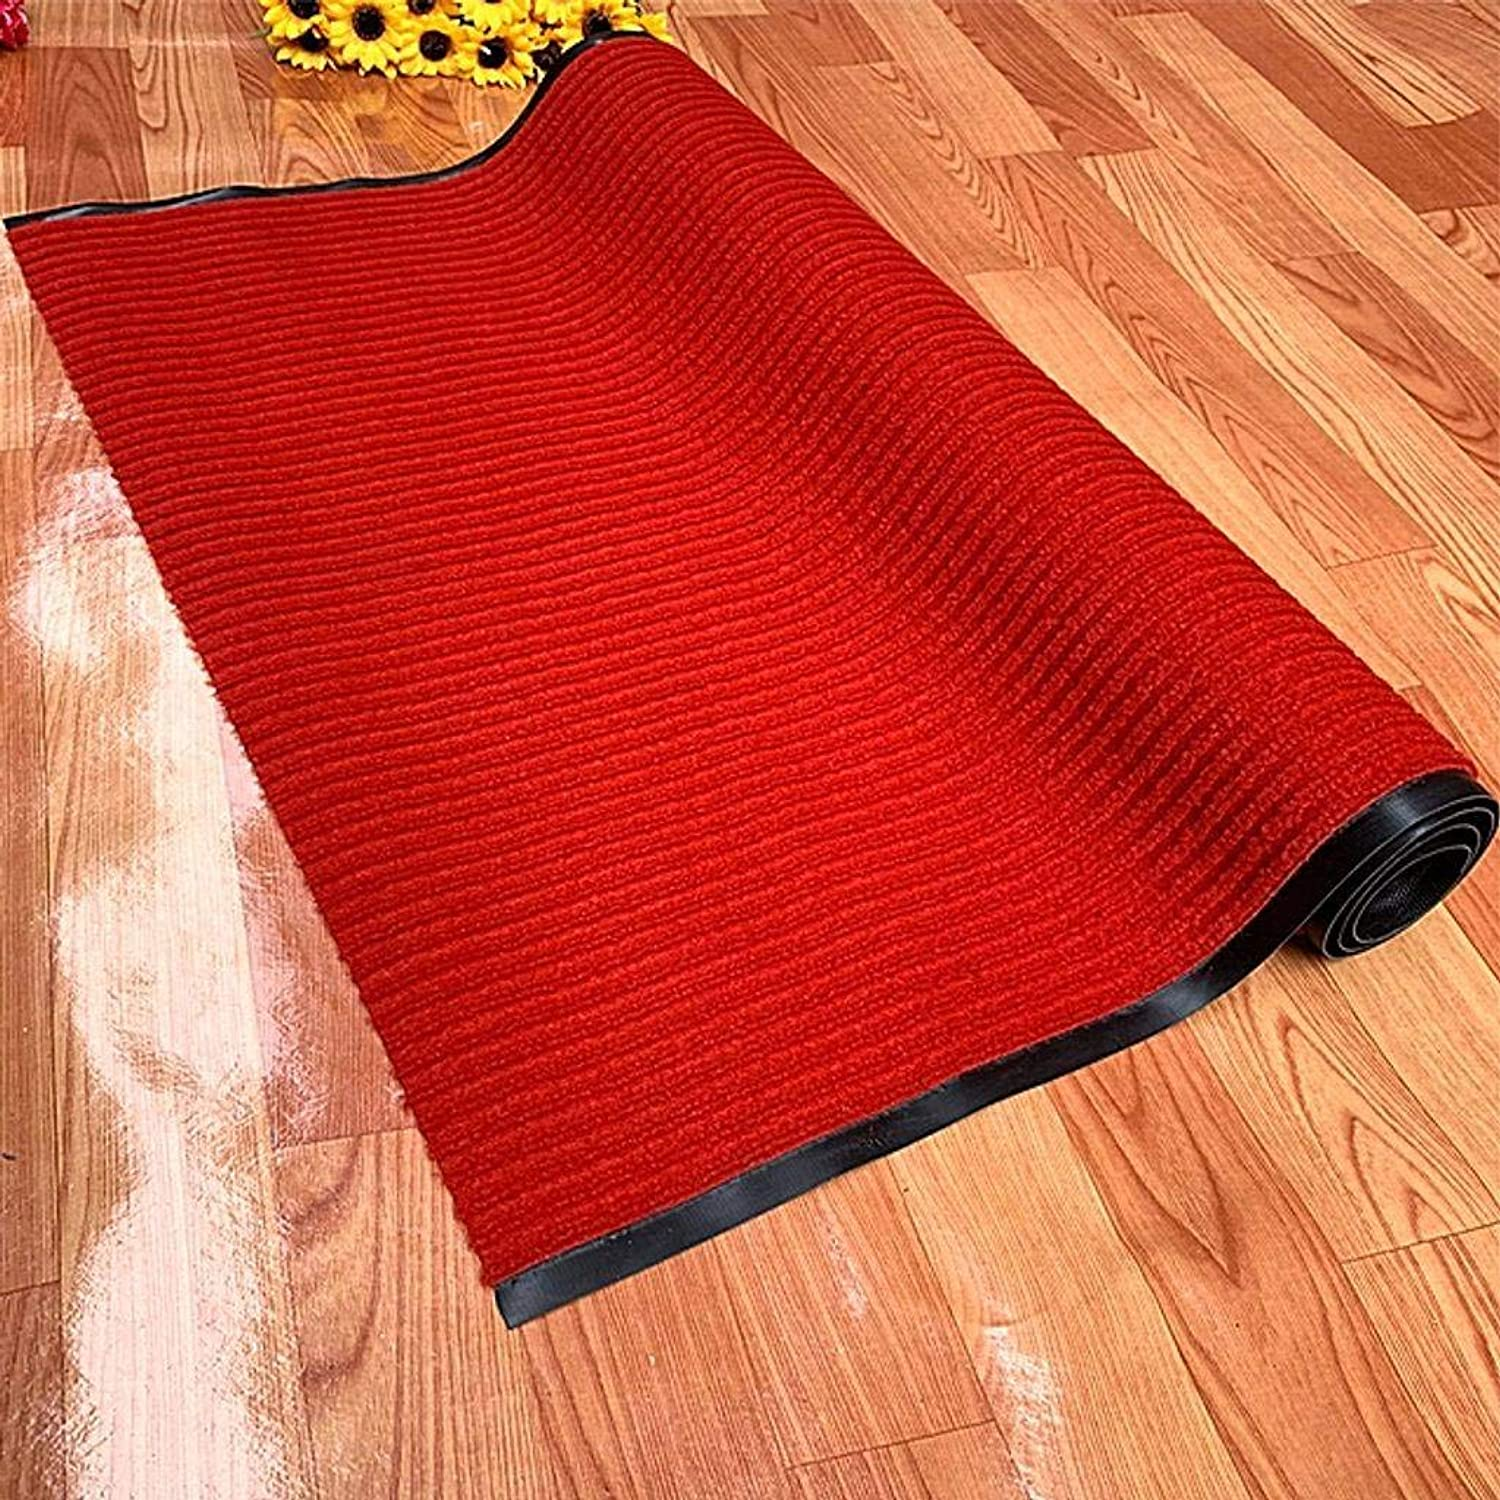 Indoor Outdoor Doormat, for Entrances, Front Doors, Hallways, Stairs, Garages and Hotels Non-Slip PVC Backing -80x120Cm(31x47Inch)-red